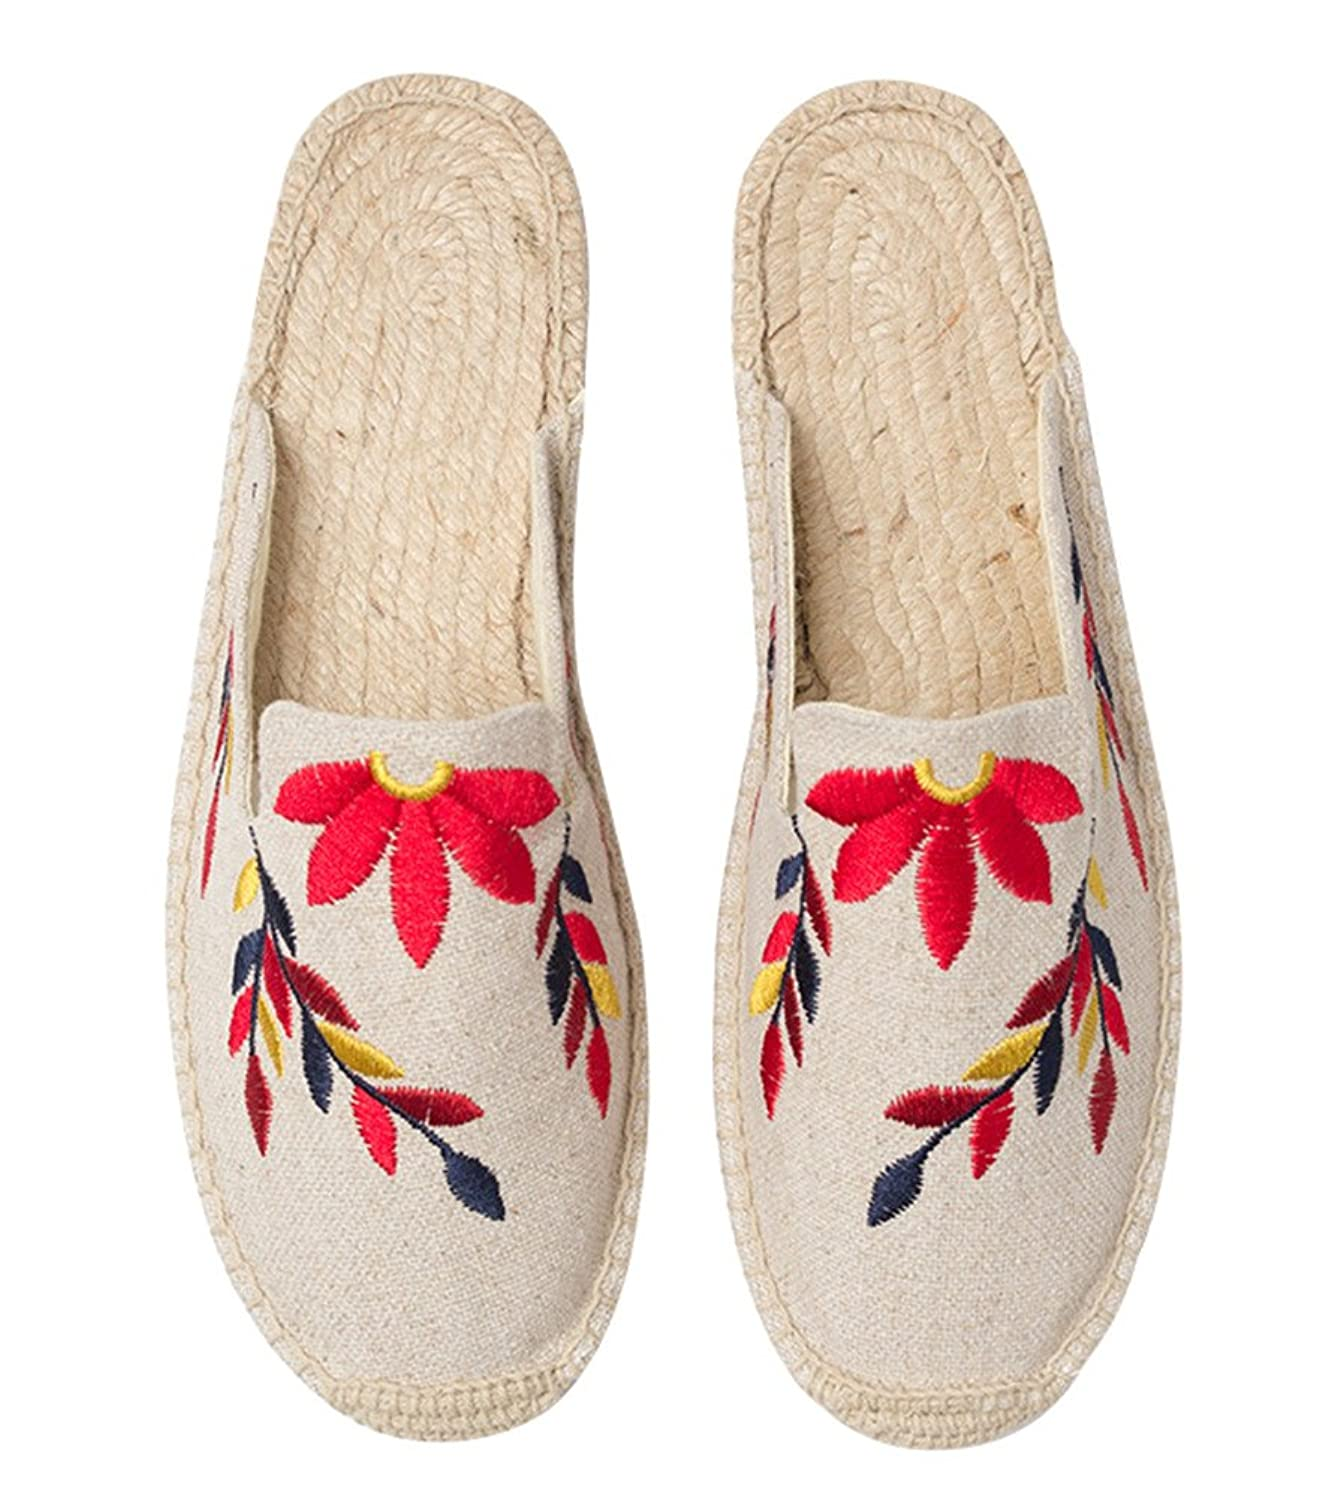 ACE SHOCK Loafer Flats Women Slip-on, Casual Moccasins Shoes Slippers Sandals Embroidery